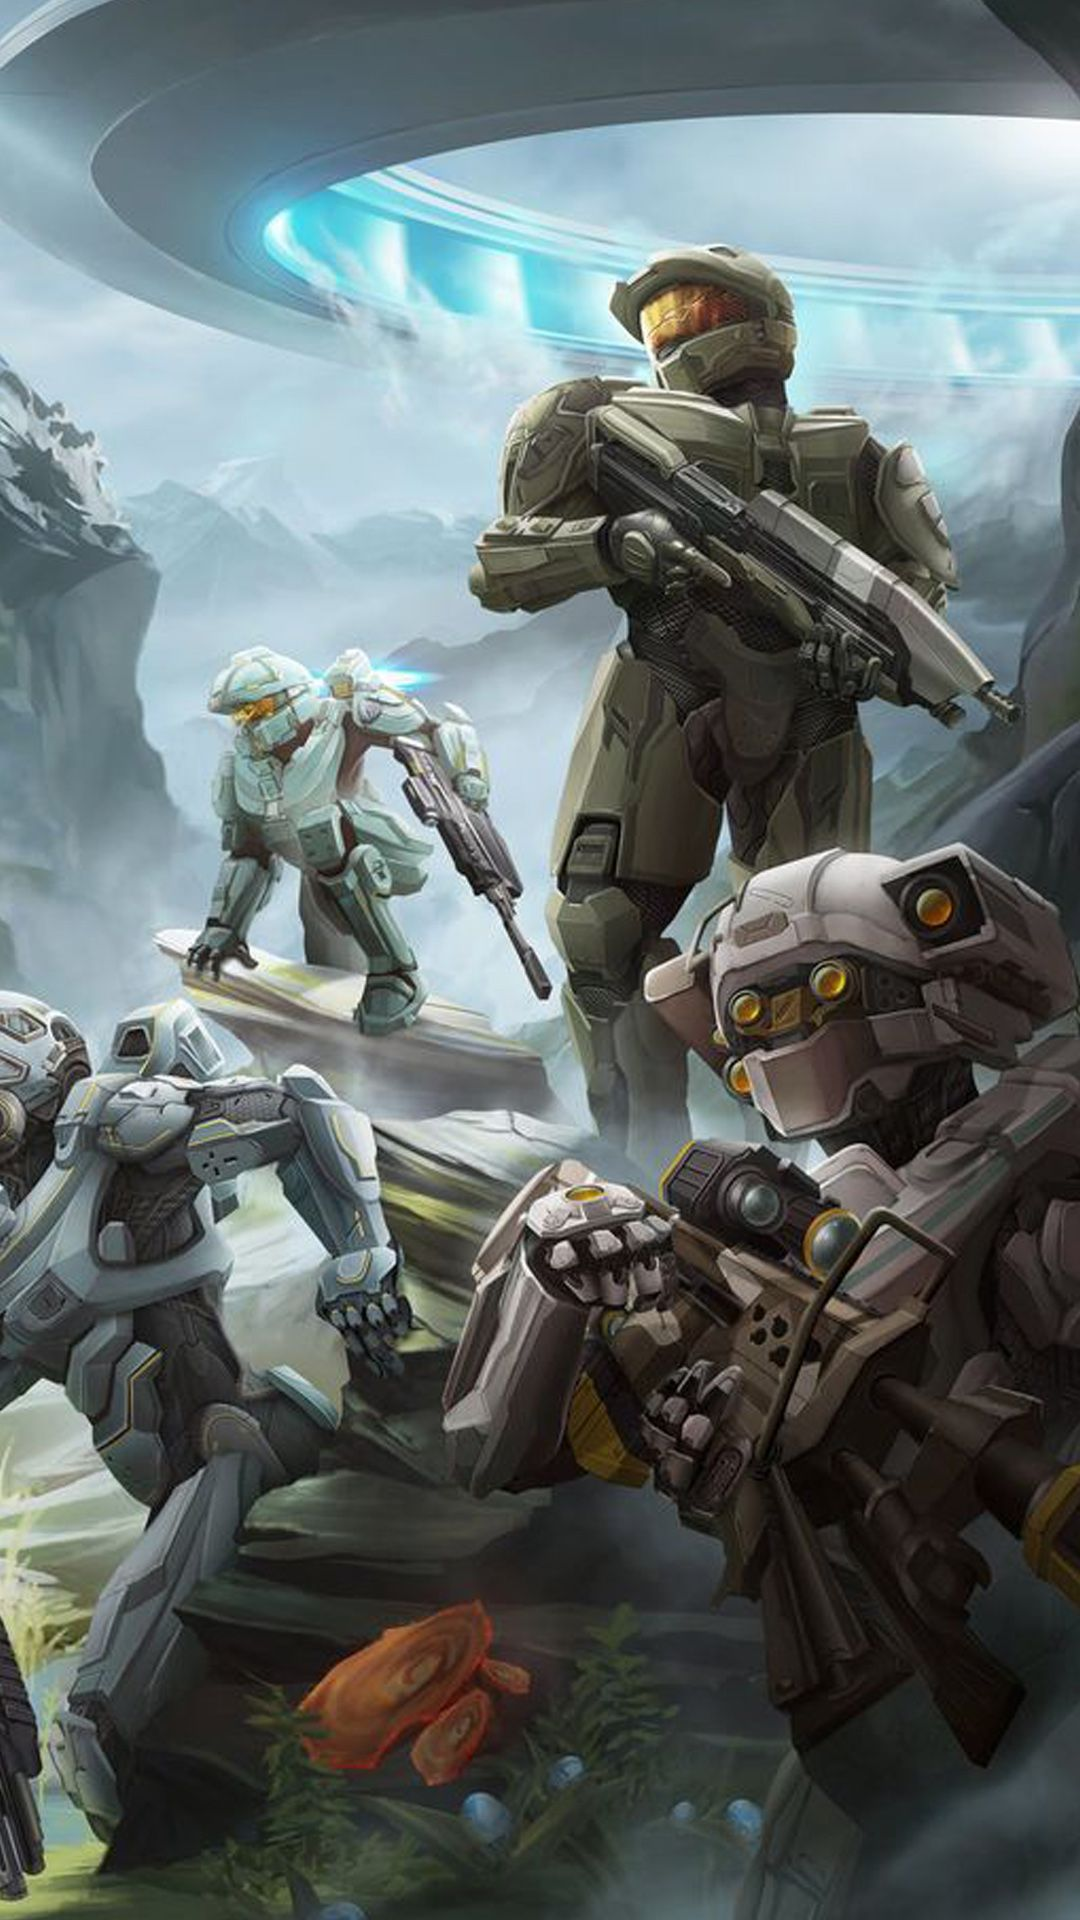 1080x1920 37 Halo Wars Wallpapers, HD Creative Halo Wars Pics, Full HD Wallpapers